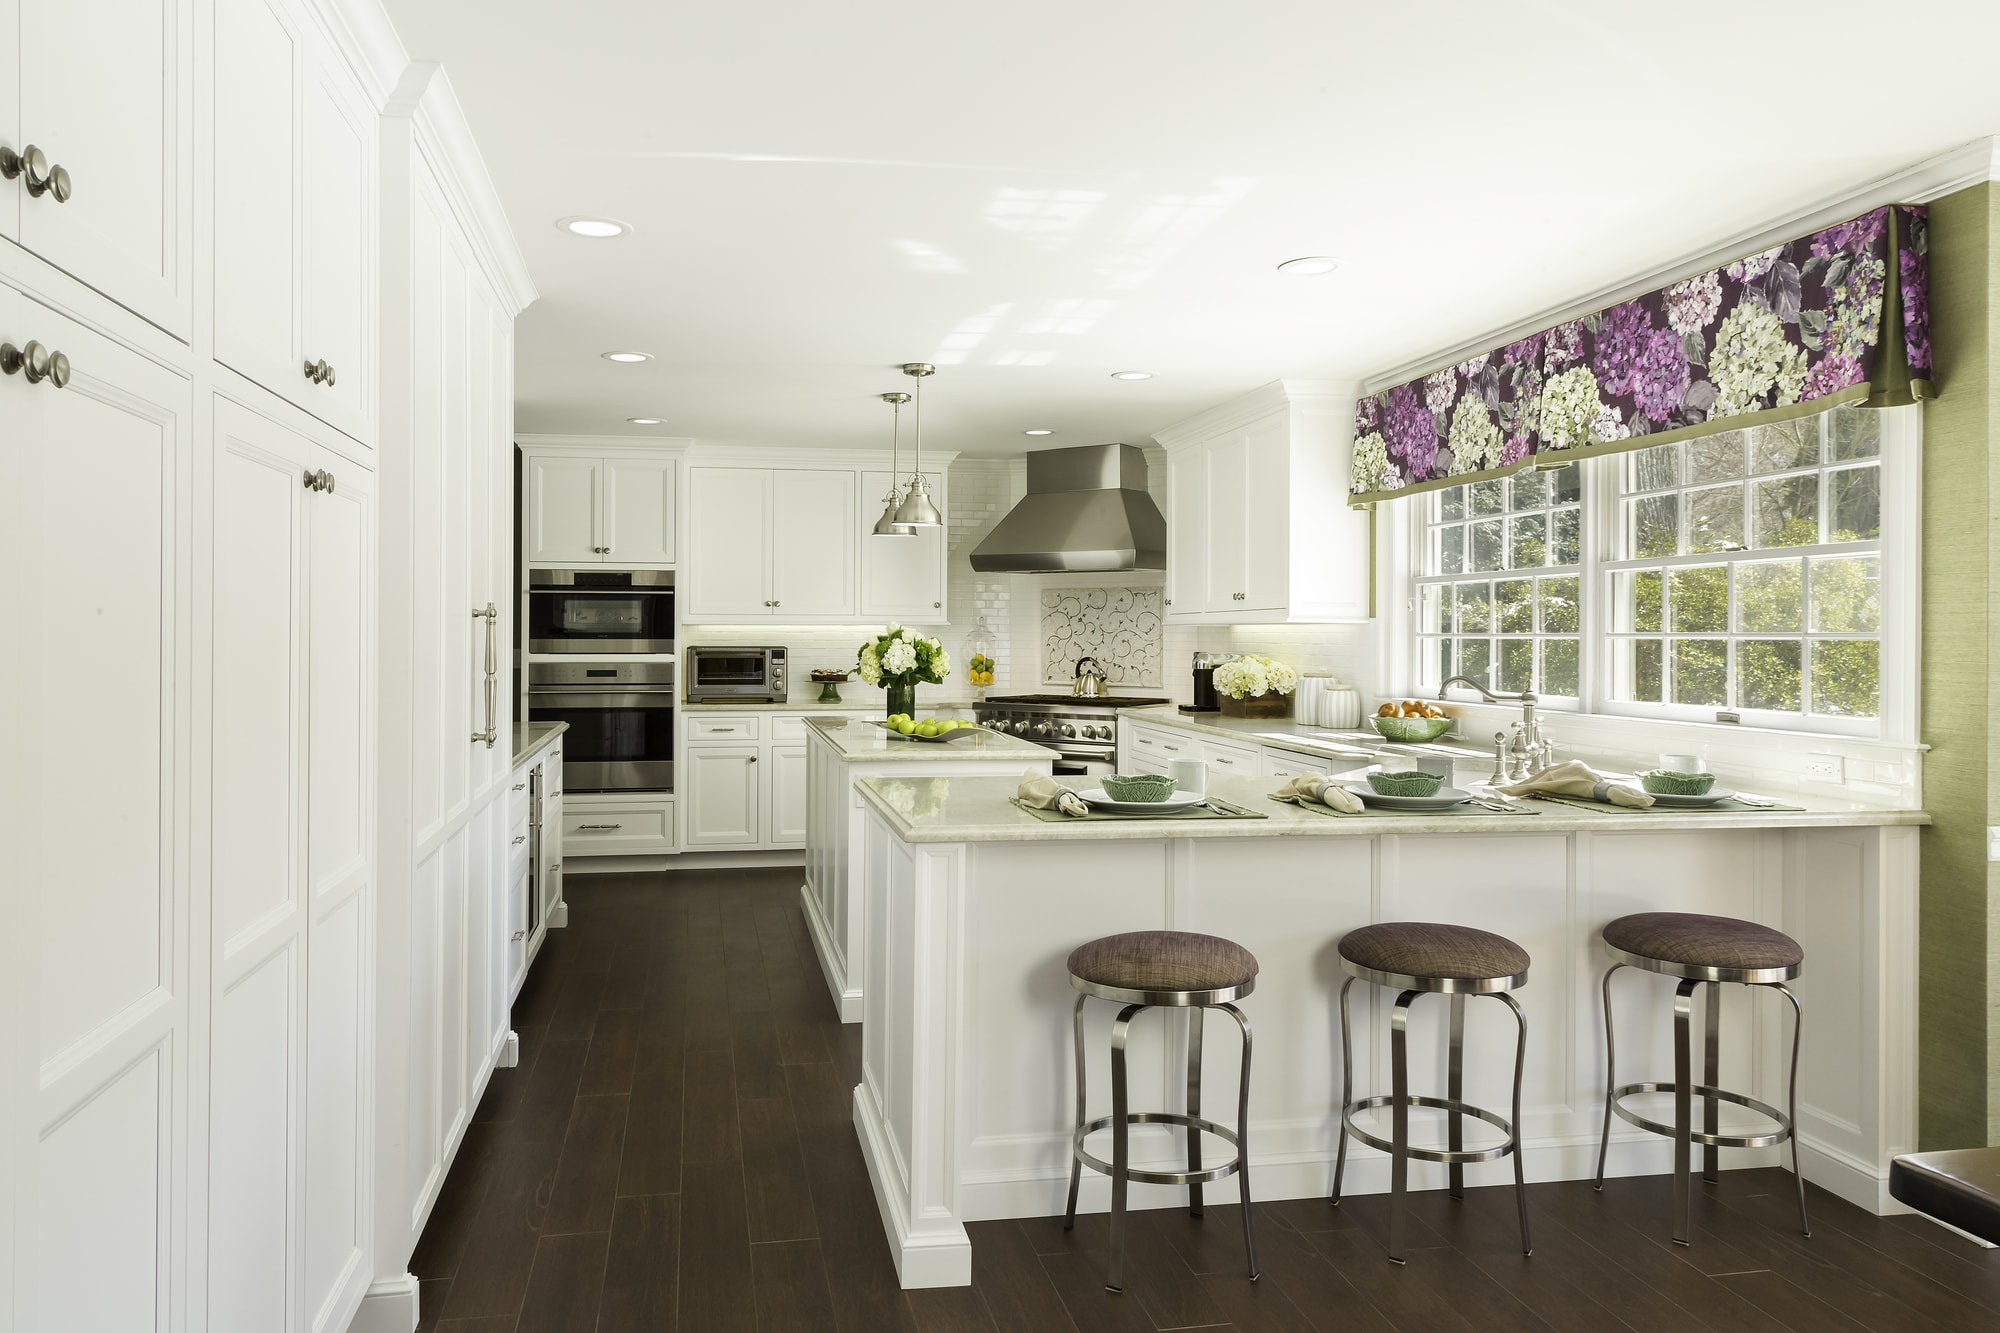 Transitional style kitchen with L'shaped countertop